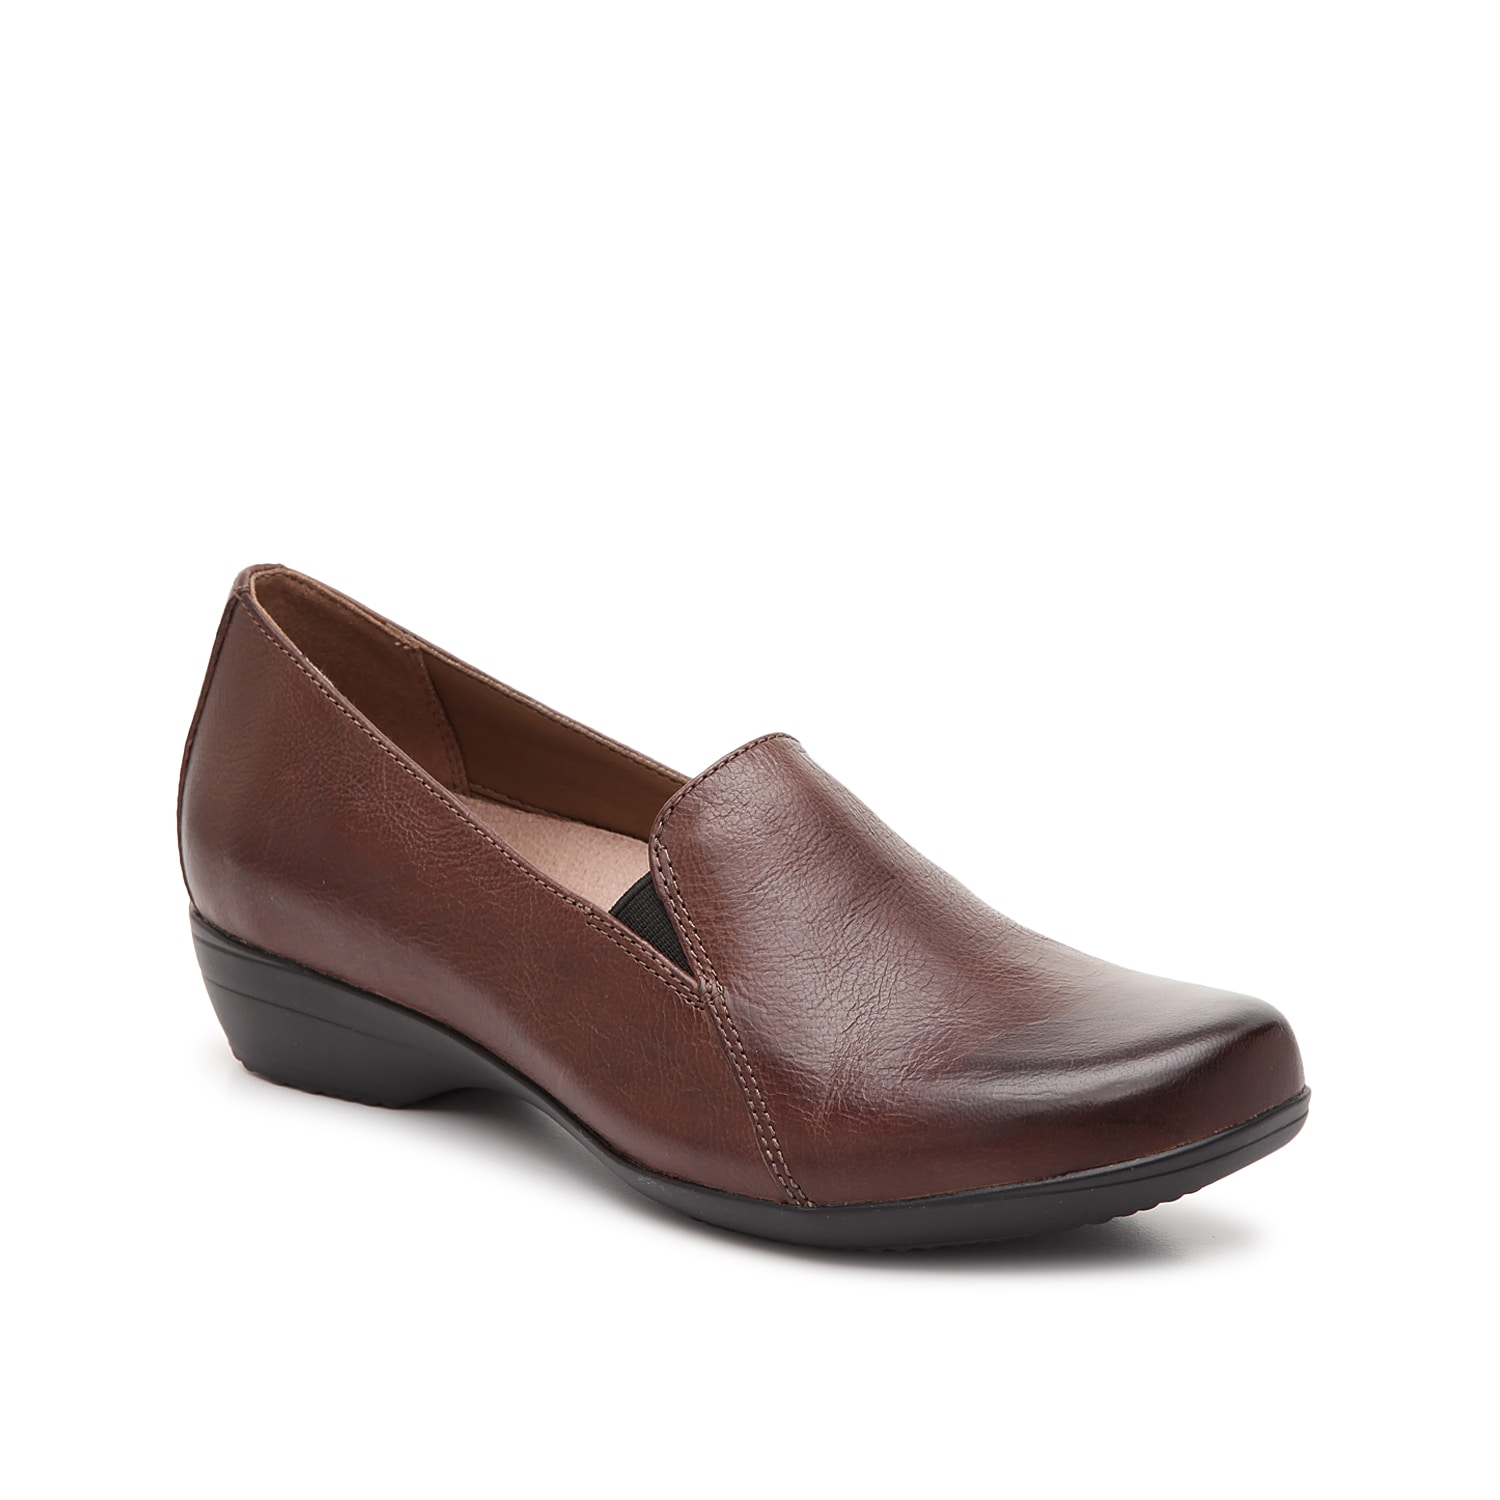 The Farah slip-on from Dansko will elevate your entire shoe collection. This classic pair is fashioned with a leather construction and a low heel that will give your outfit the perfect lift!